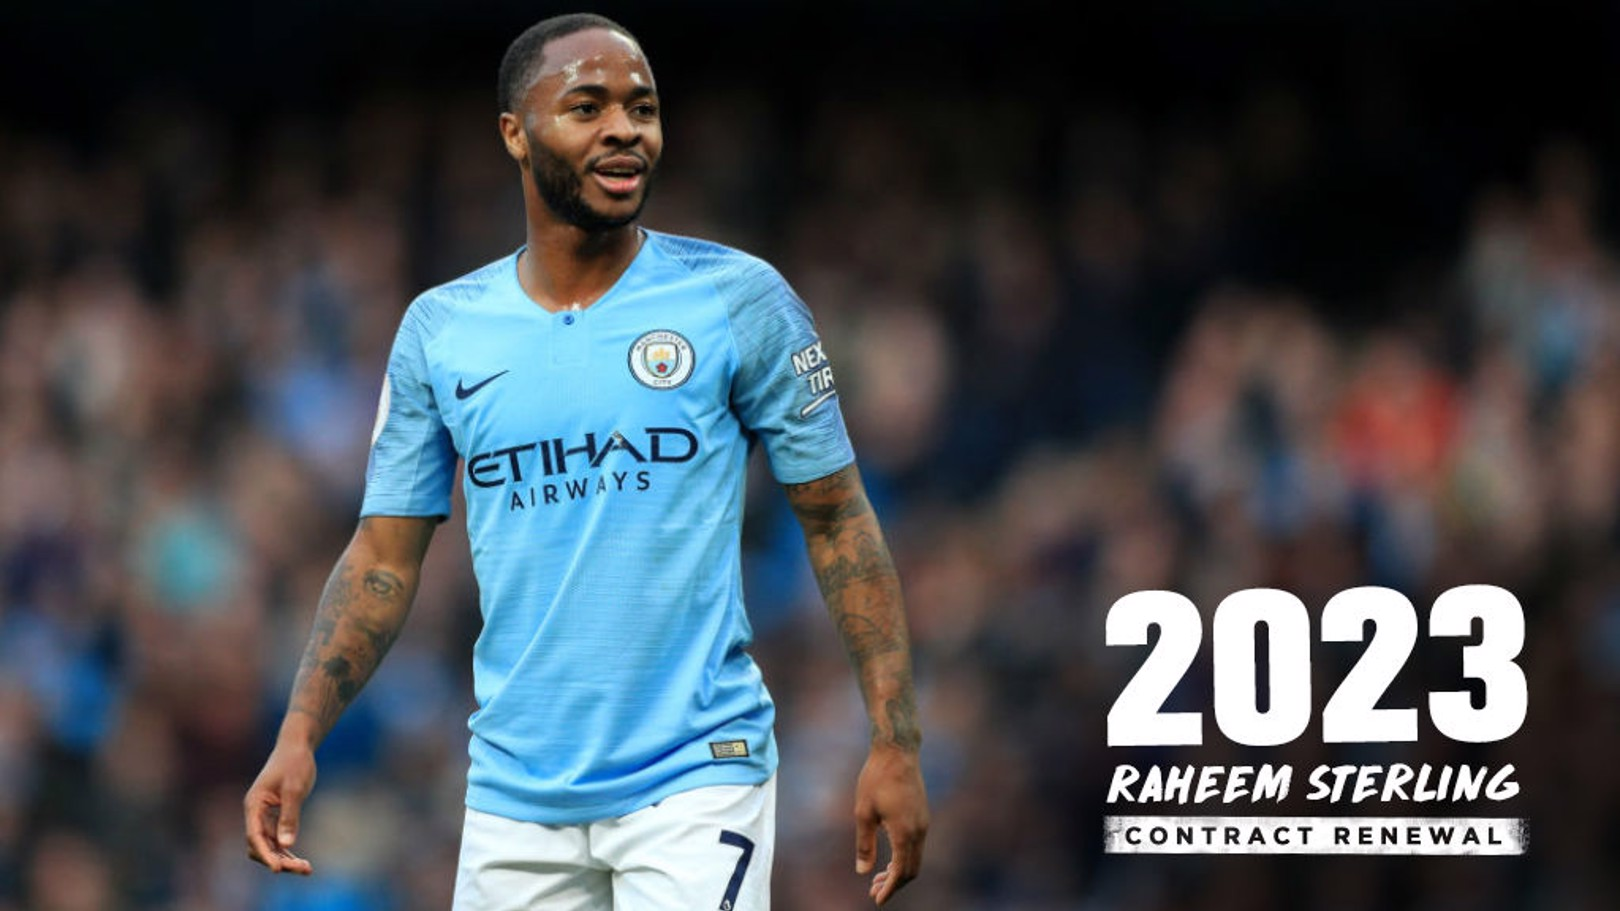 Opinion: Raheem Sterling - the best is yet to come